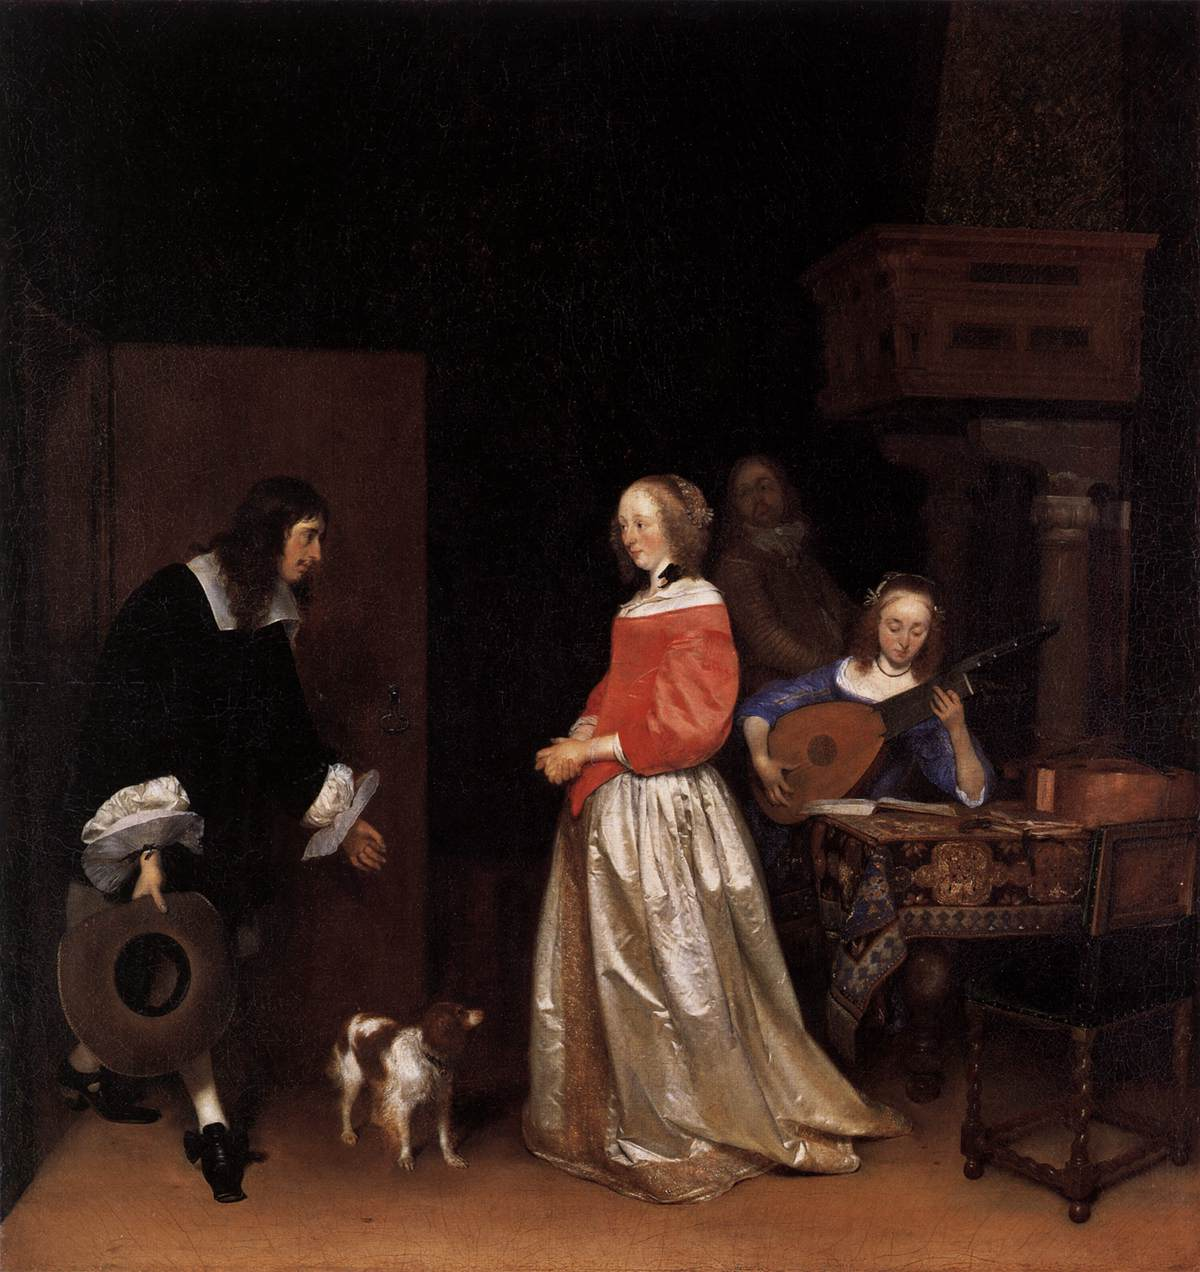 Gerard ter Borch, The Suitor's Visit, circa 1658, oil on canvas